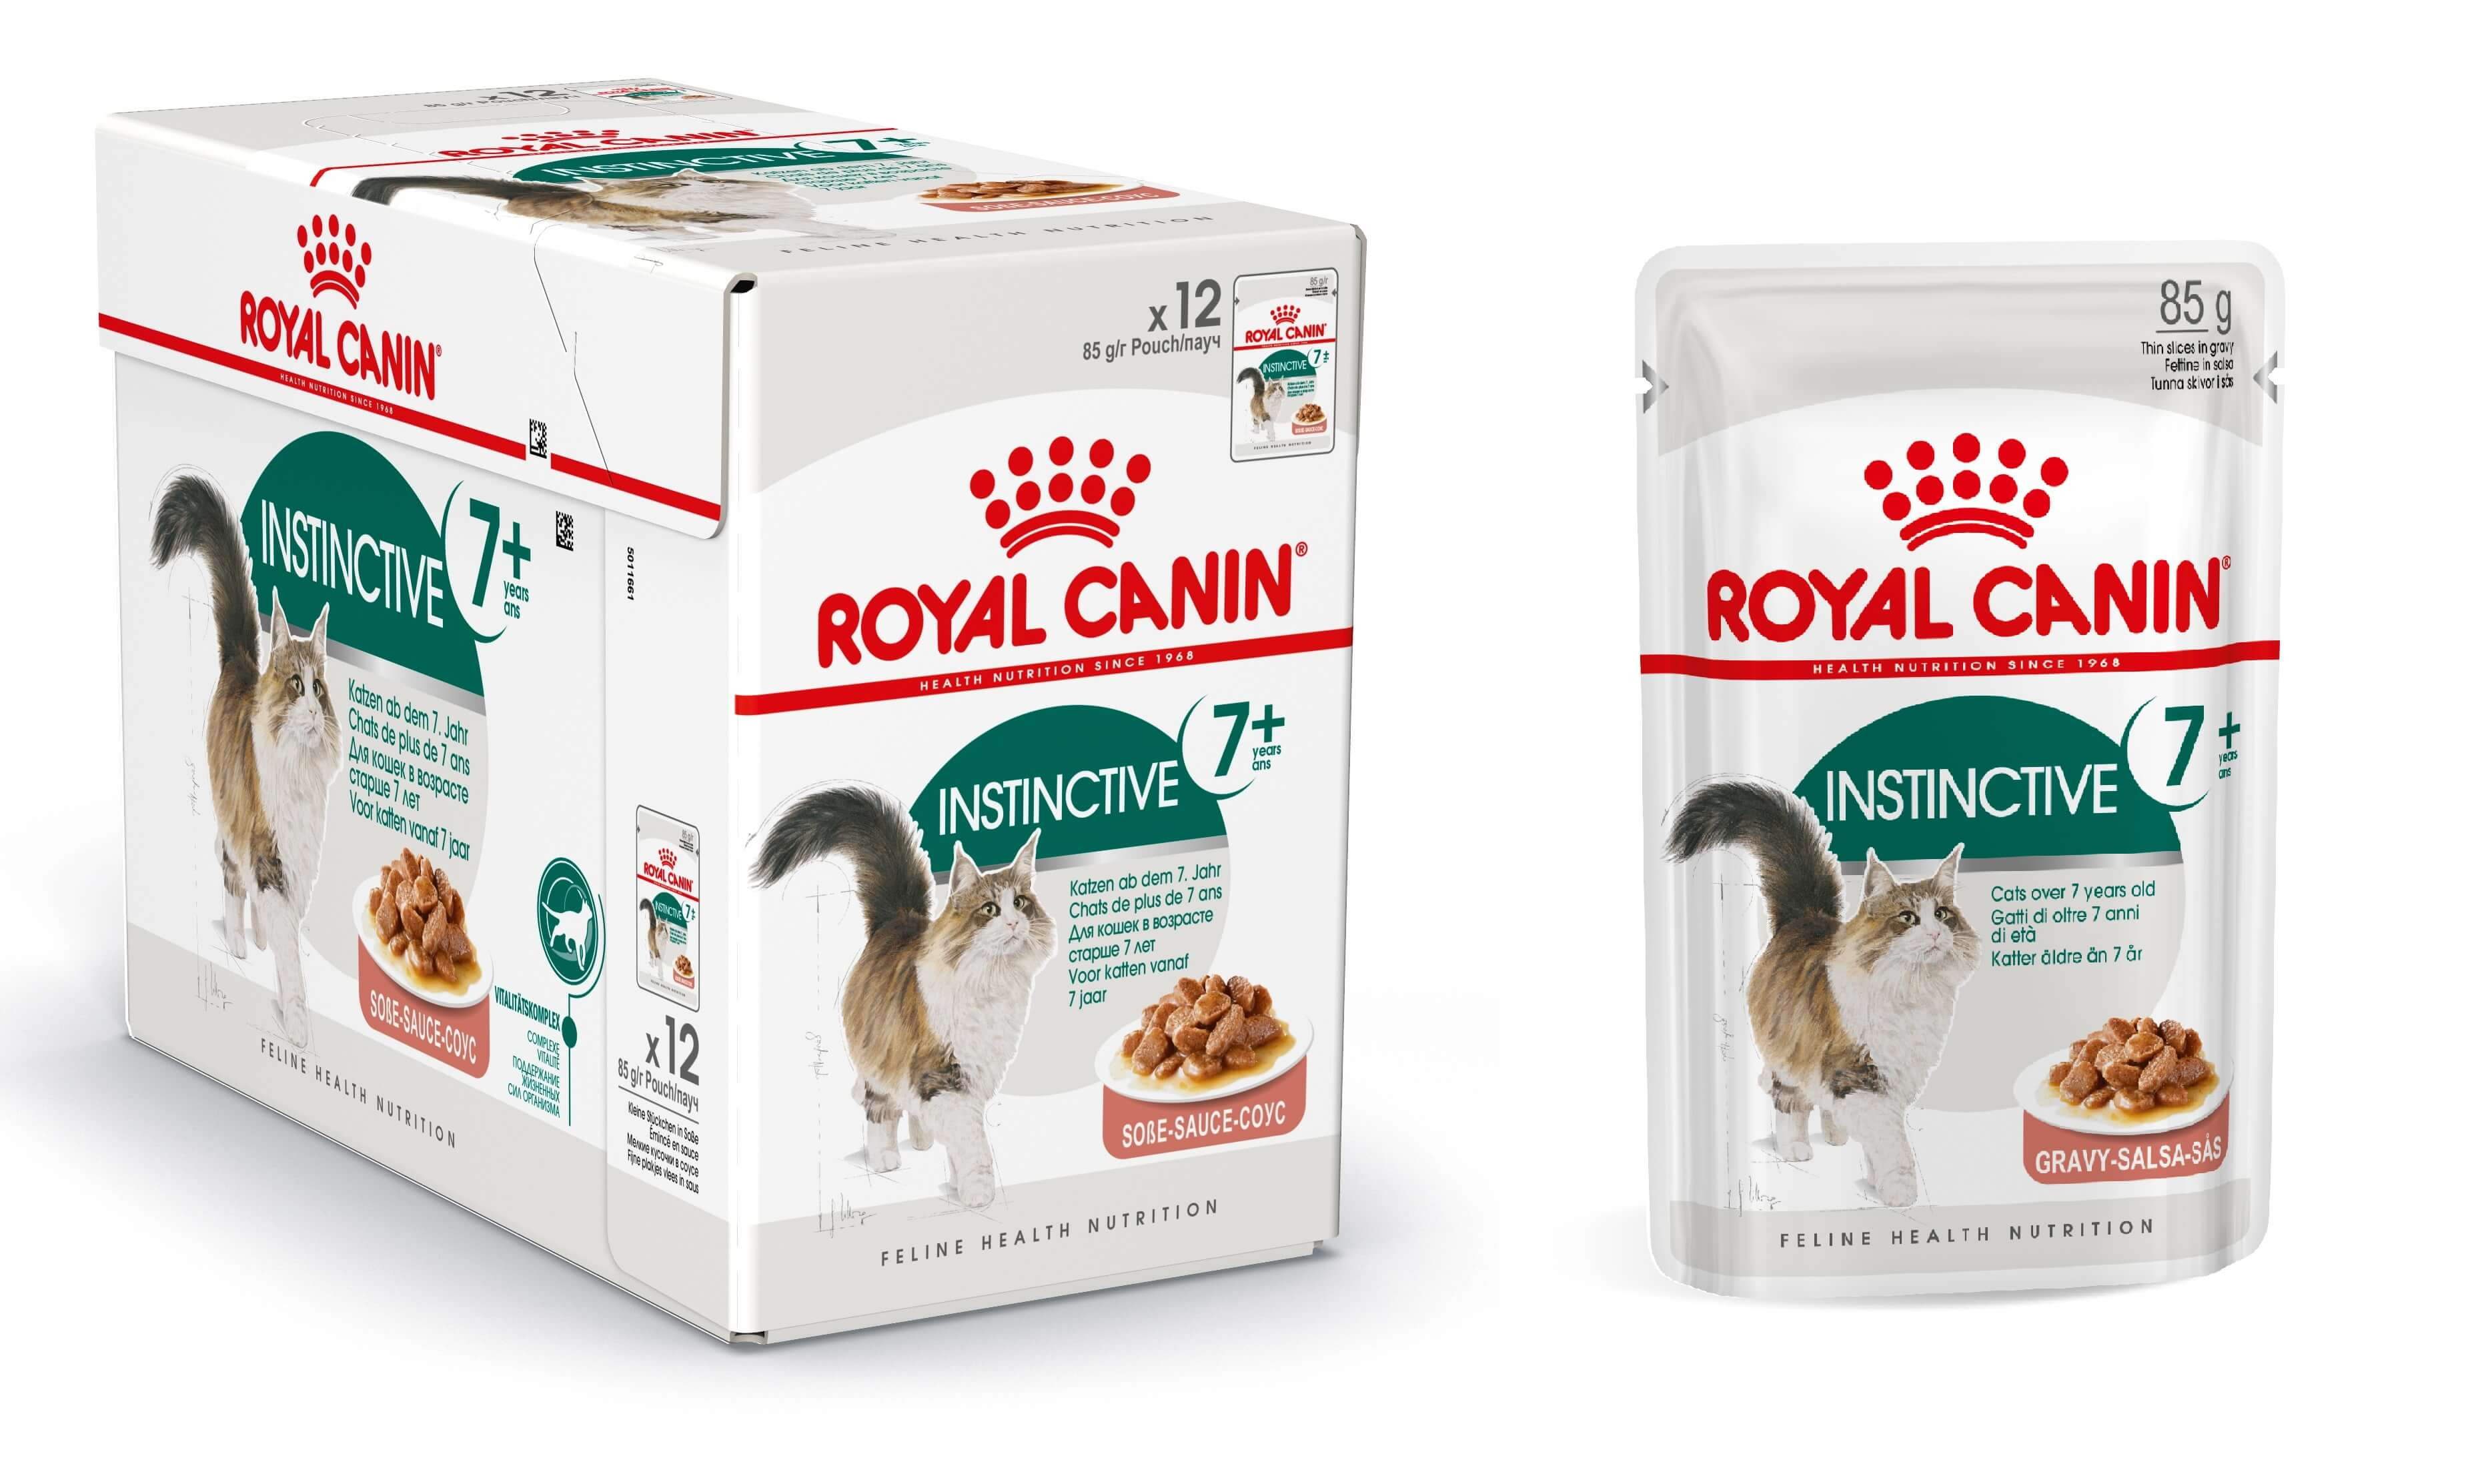 Royal Canin Instinctive +7 pour chat